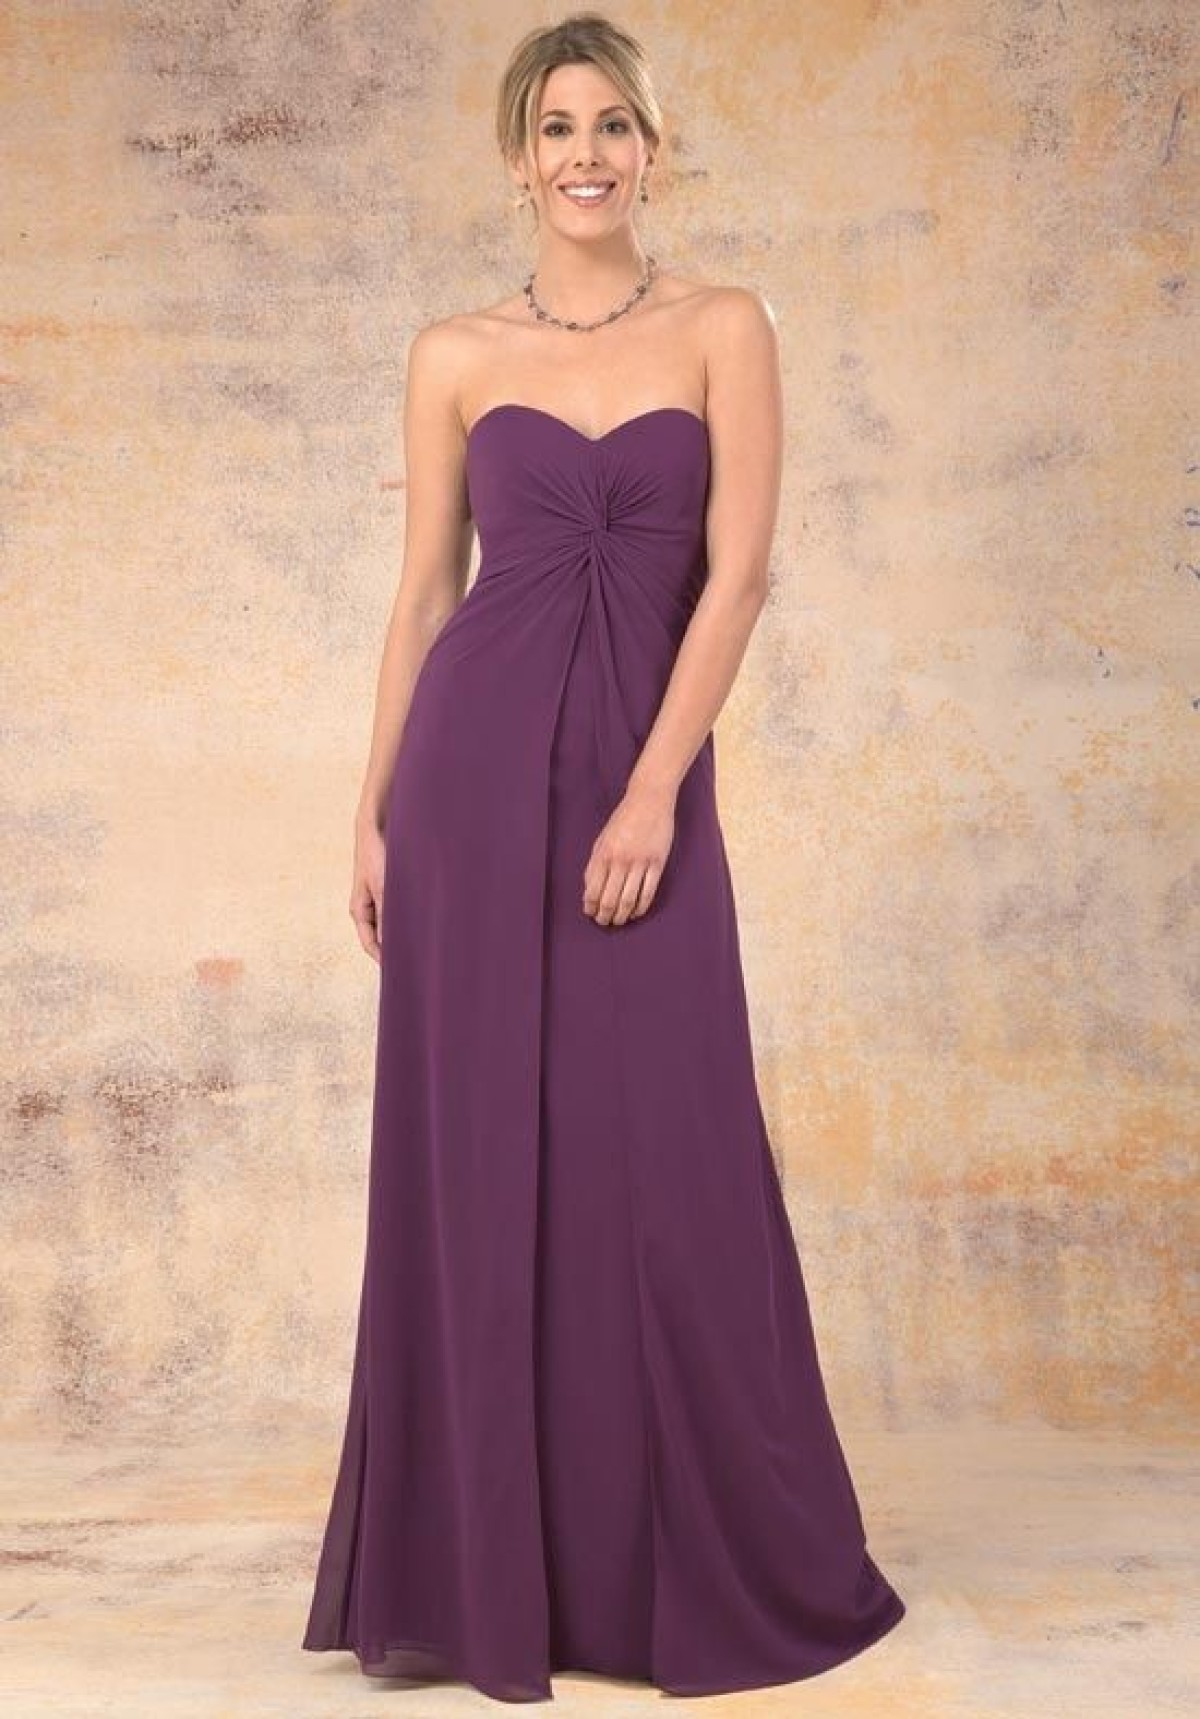 Chiffon empire line bridesmaid dress blessings of brighton bmd943604 bridesmaid dress bmd943604 full length cadbury purple chiffon empire line bridesmaid dress at ombrellifo Choice Image